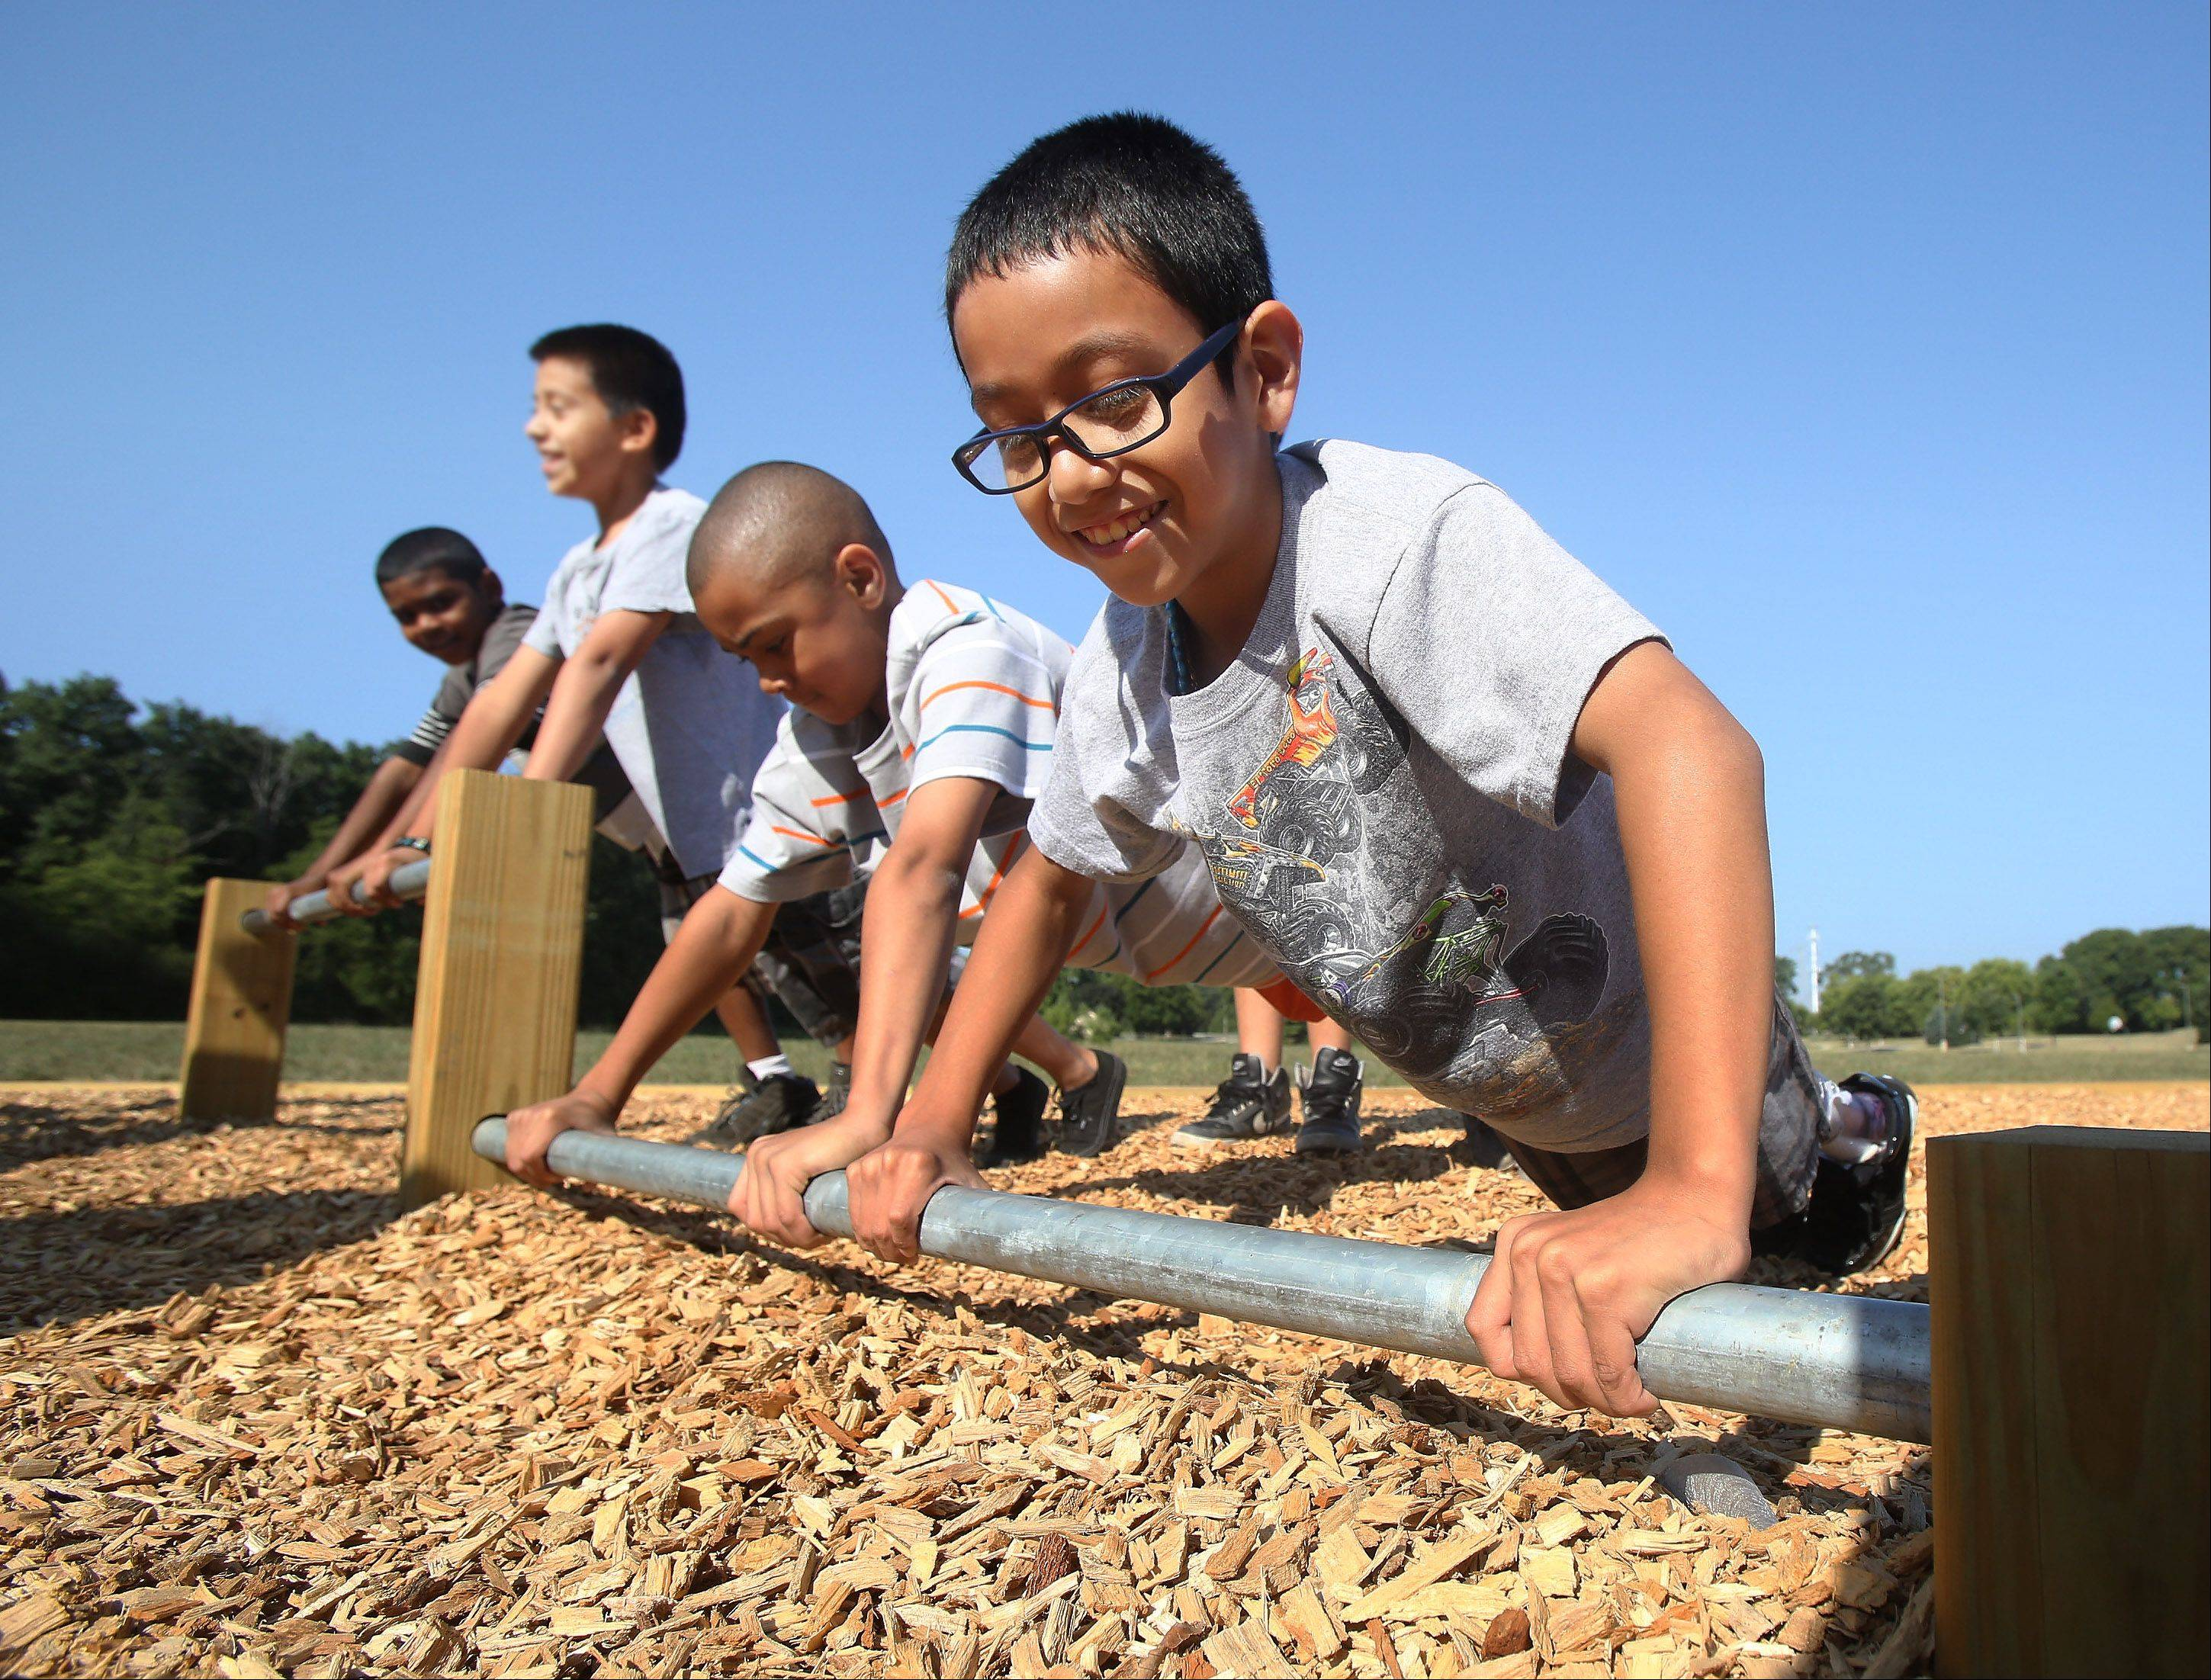 Fifth graders Angel Cruz, right, Isaiah Nixon and other students, do pushups on the new Fit-Trail station Tuesday at Woodland Intermediate School in Gurnee. The new fitness station will be used for students during the school day and available to the community after school hours.